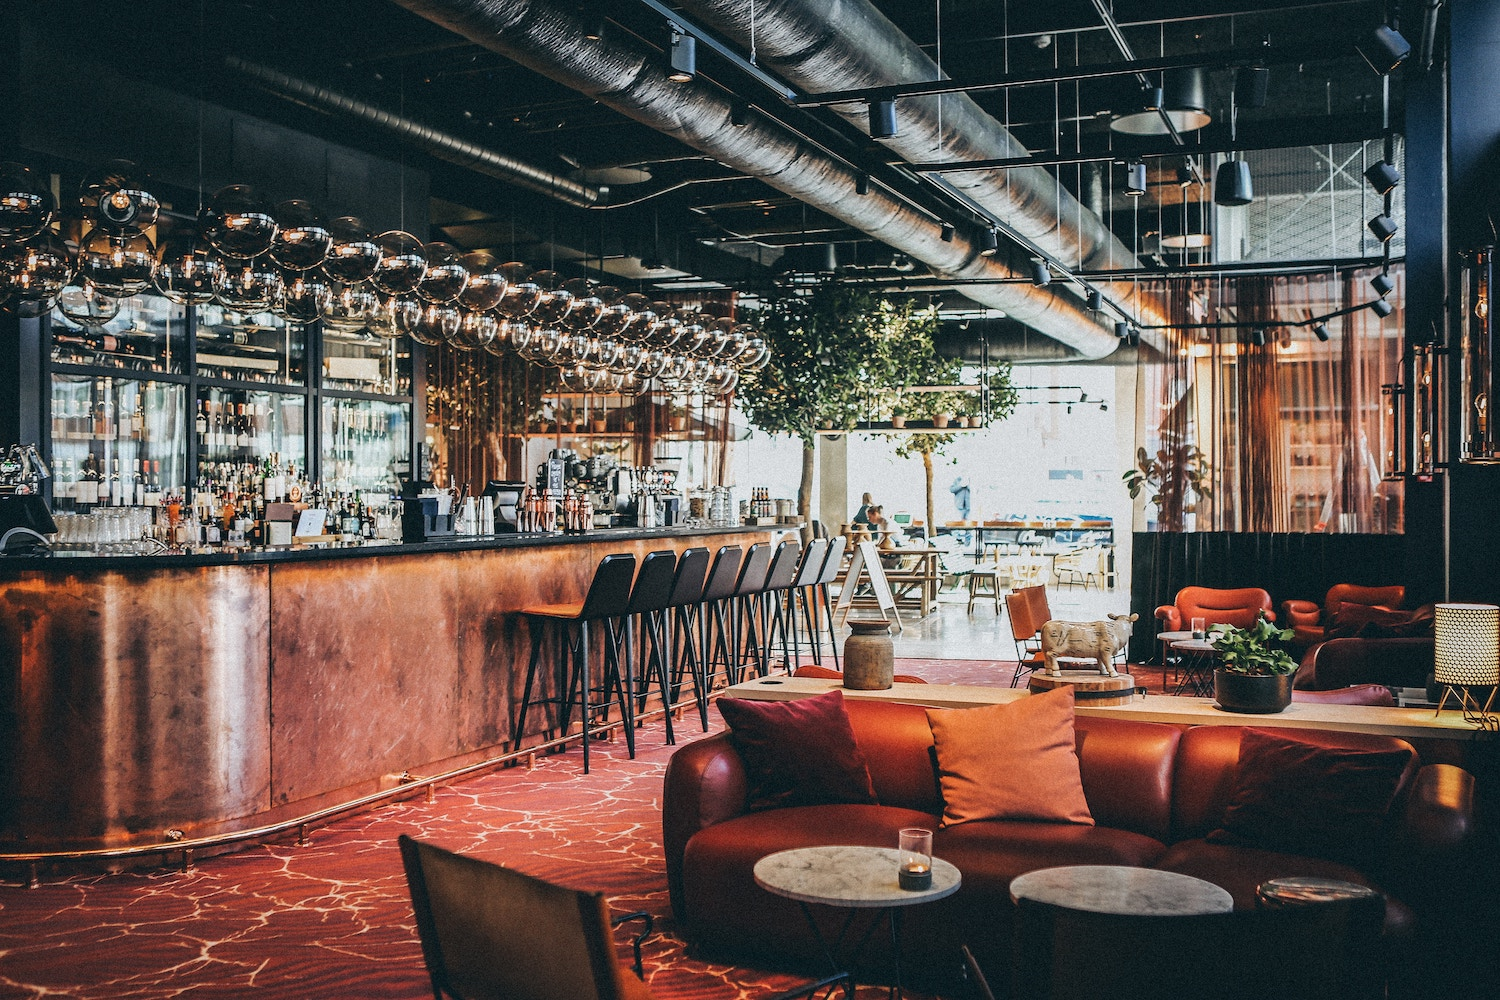 Is Anchorage ready for an alcohol-free bar?